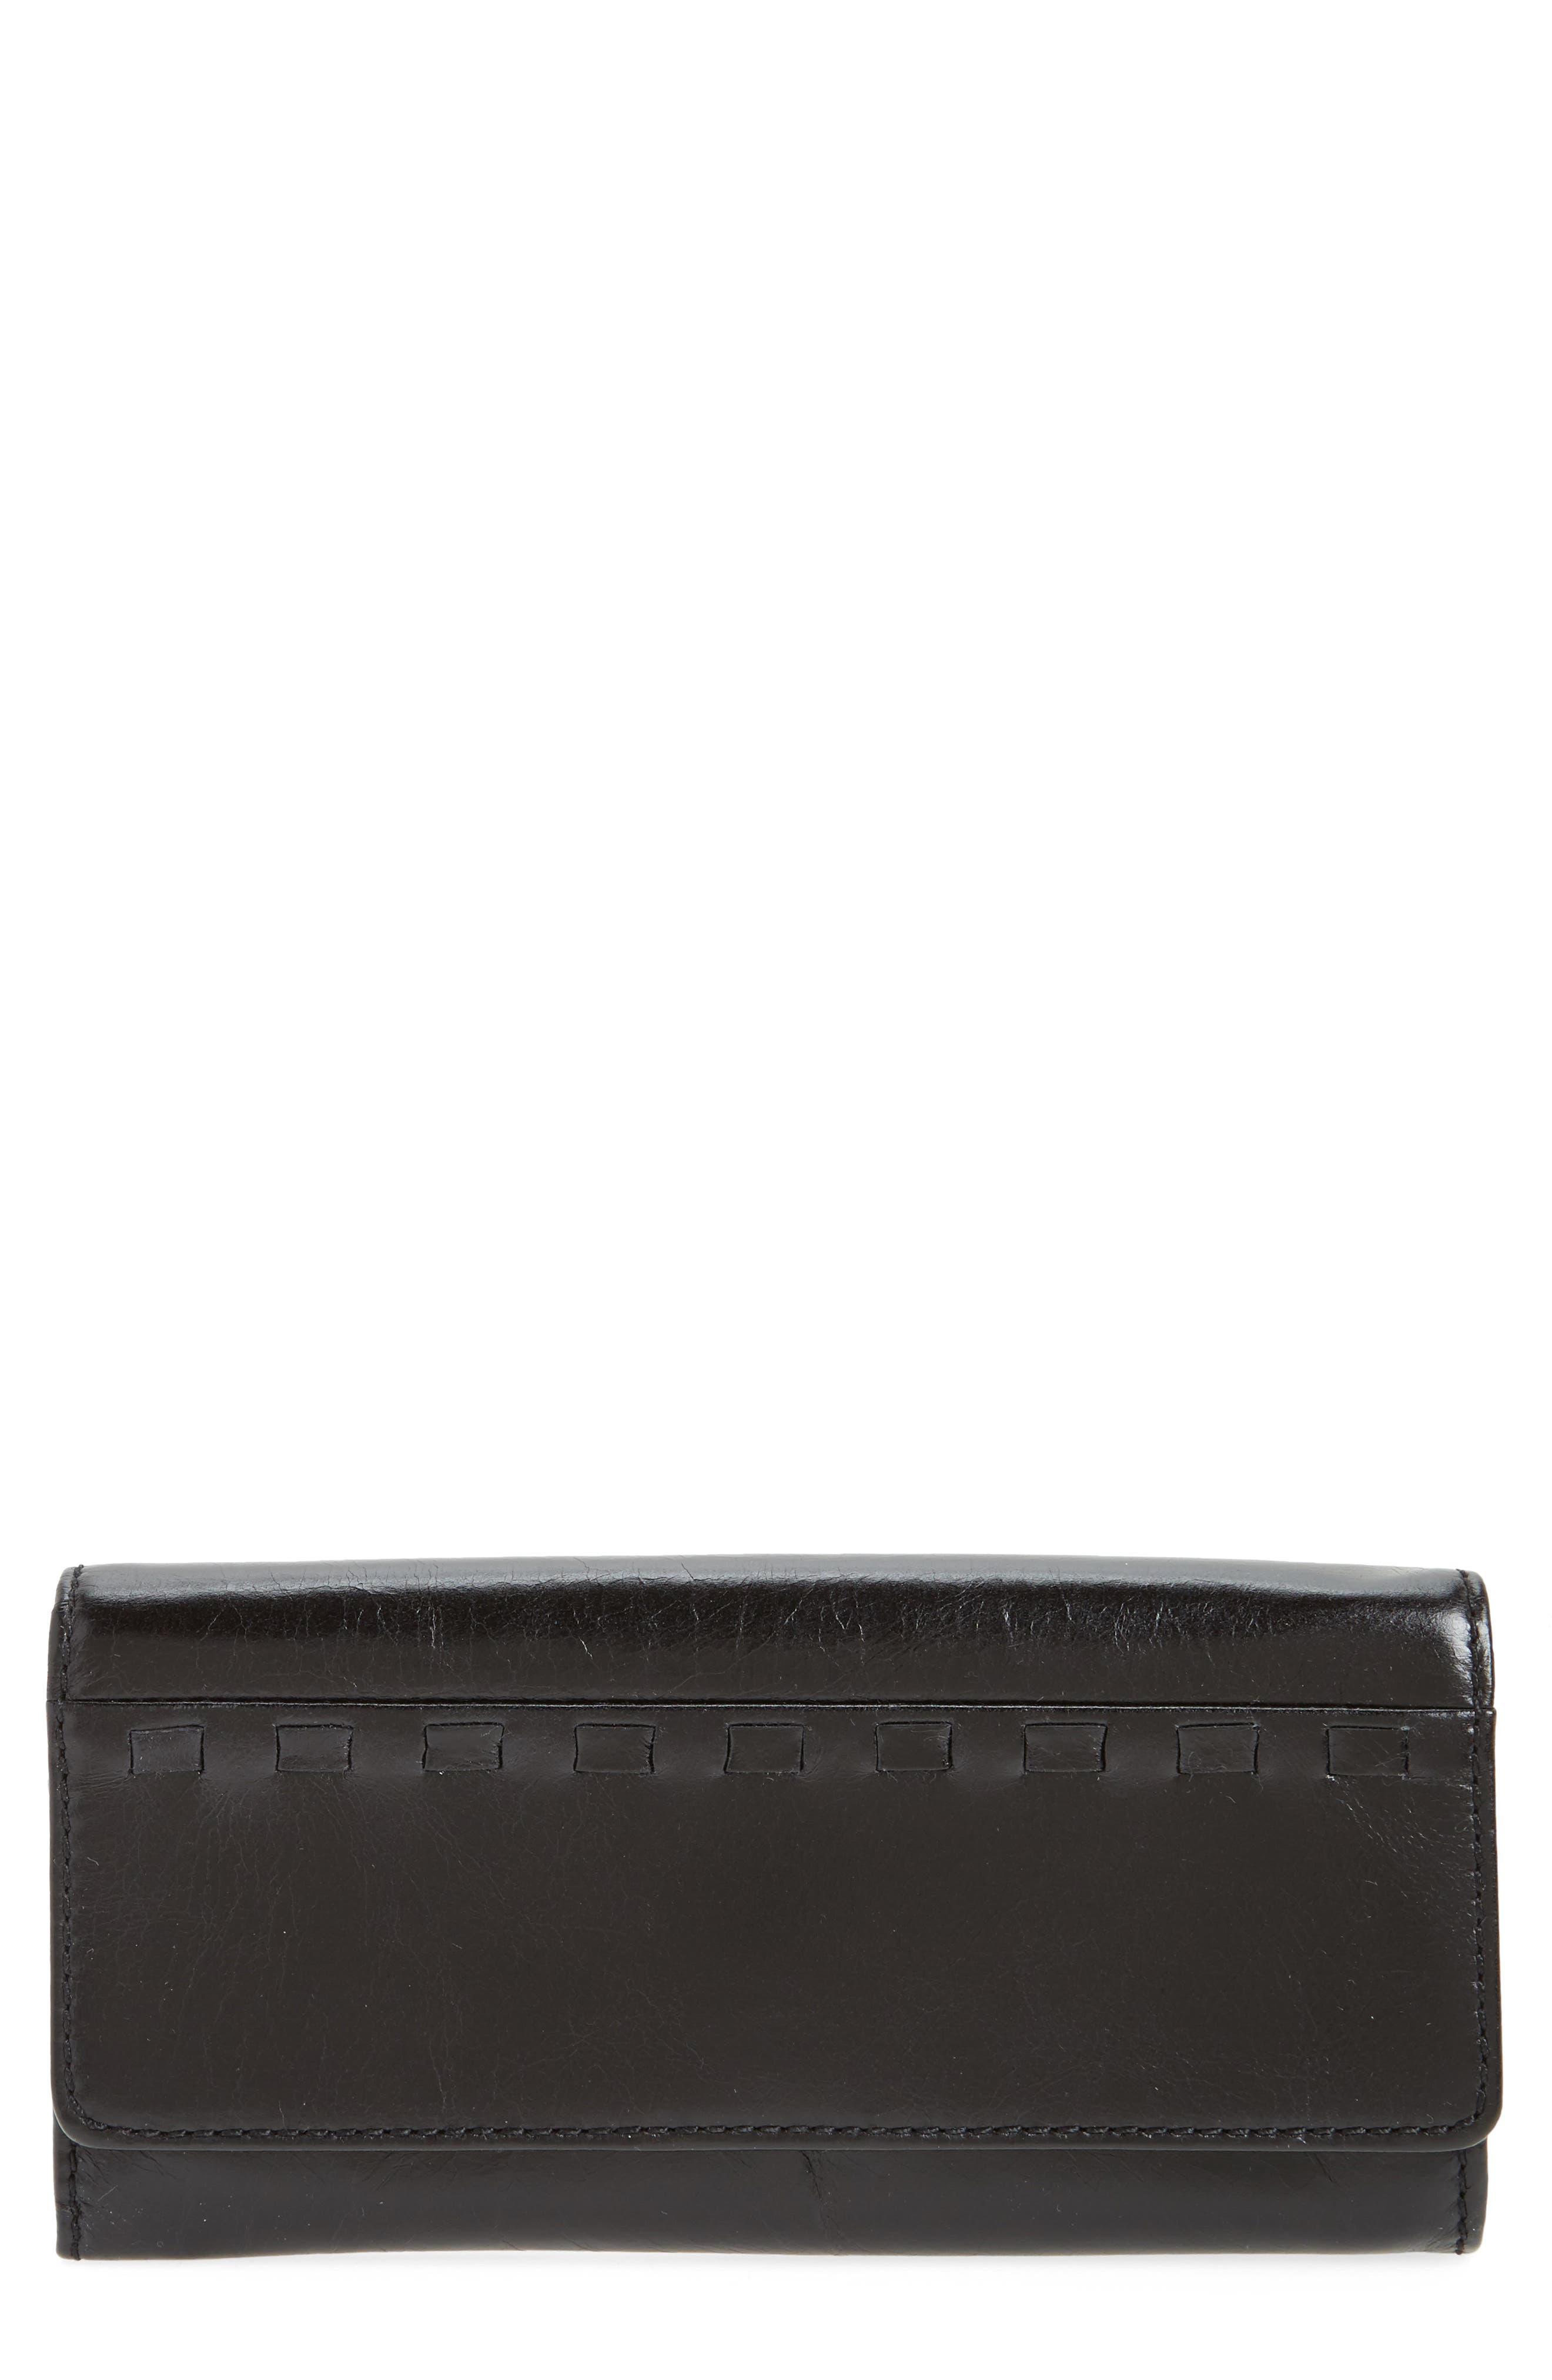 Rider Leather Wallet,                         Main,                         color, 001